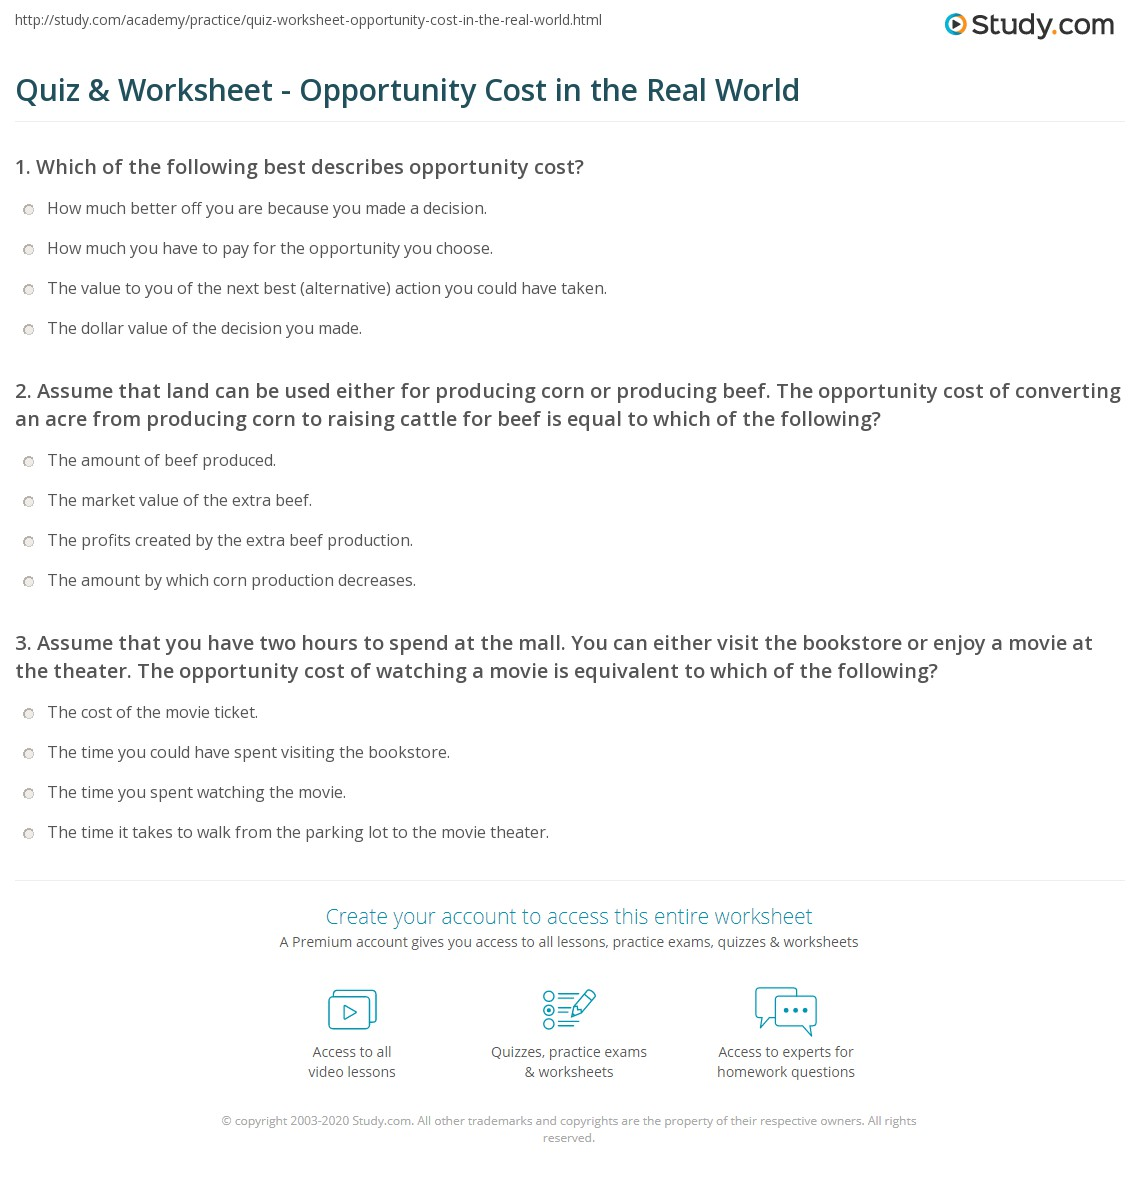 quiz worksheet opportunity cost in the real world. Black Bedroom Furniture Sets. Home Design Ideas